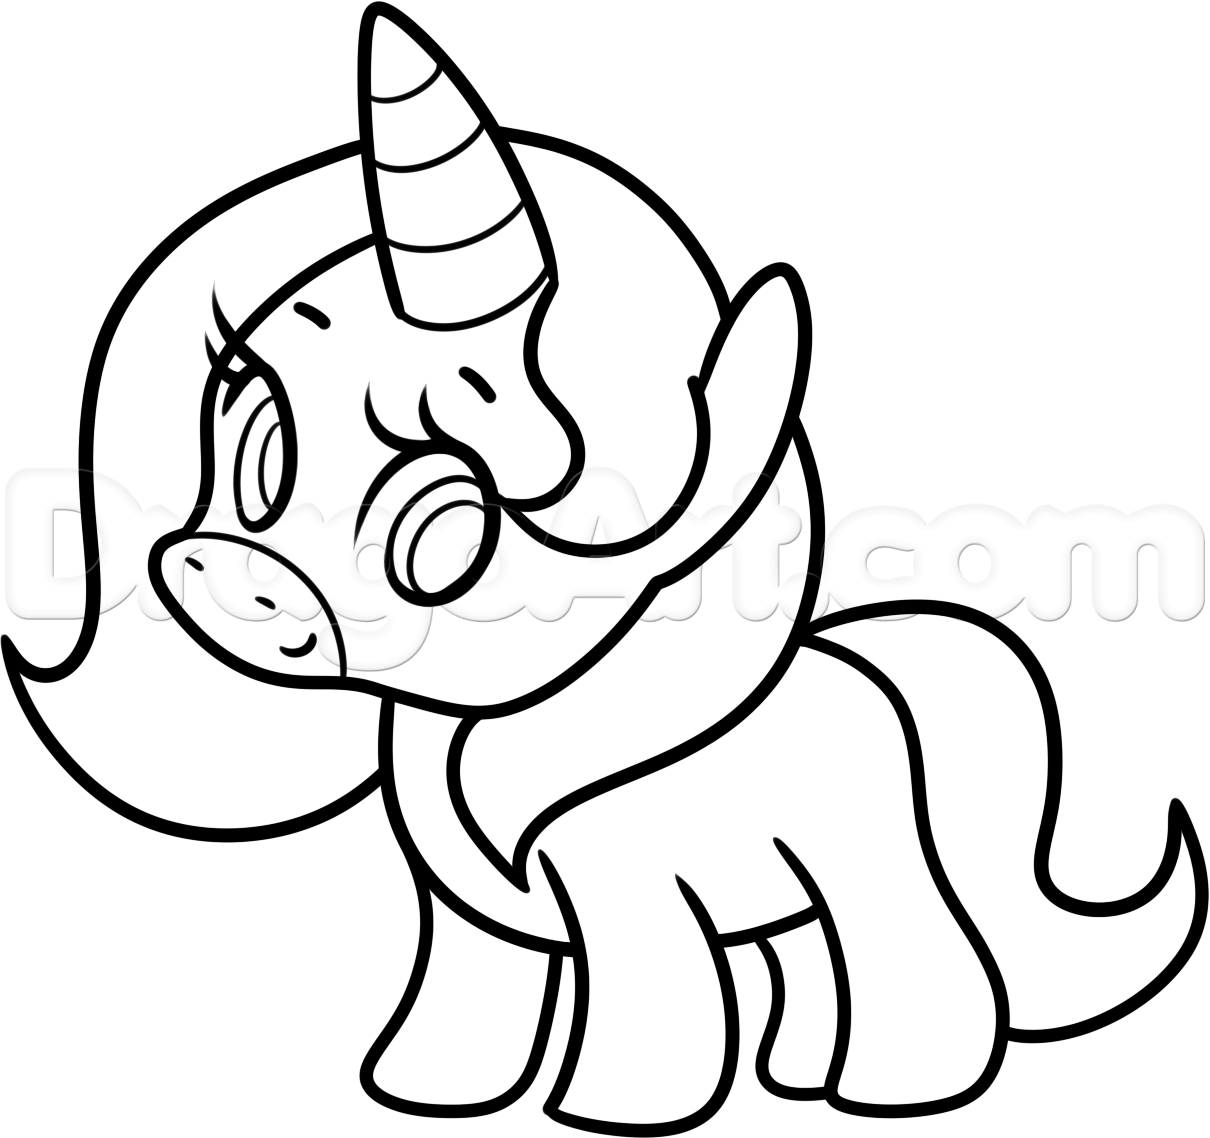 Unicorn Cartoon Drawing